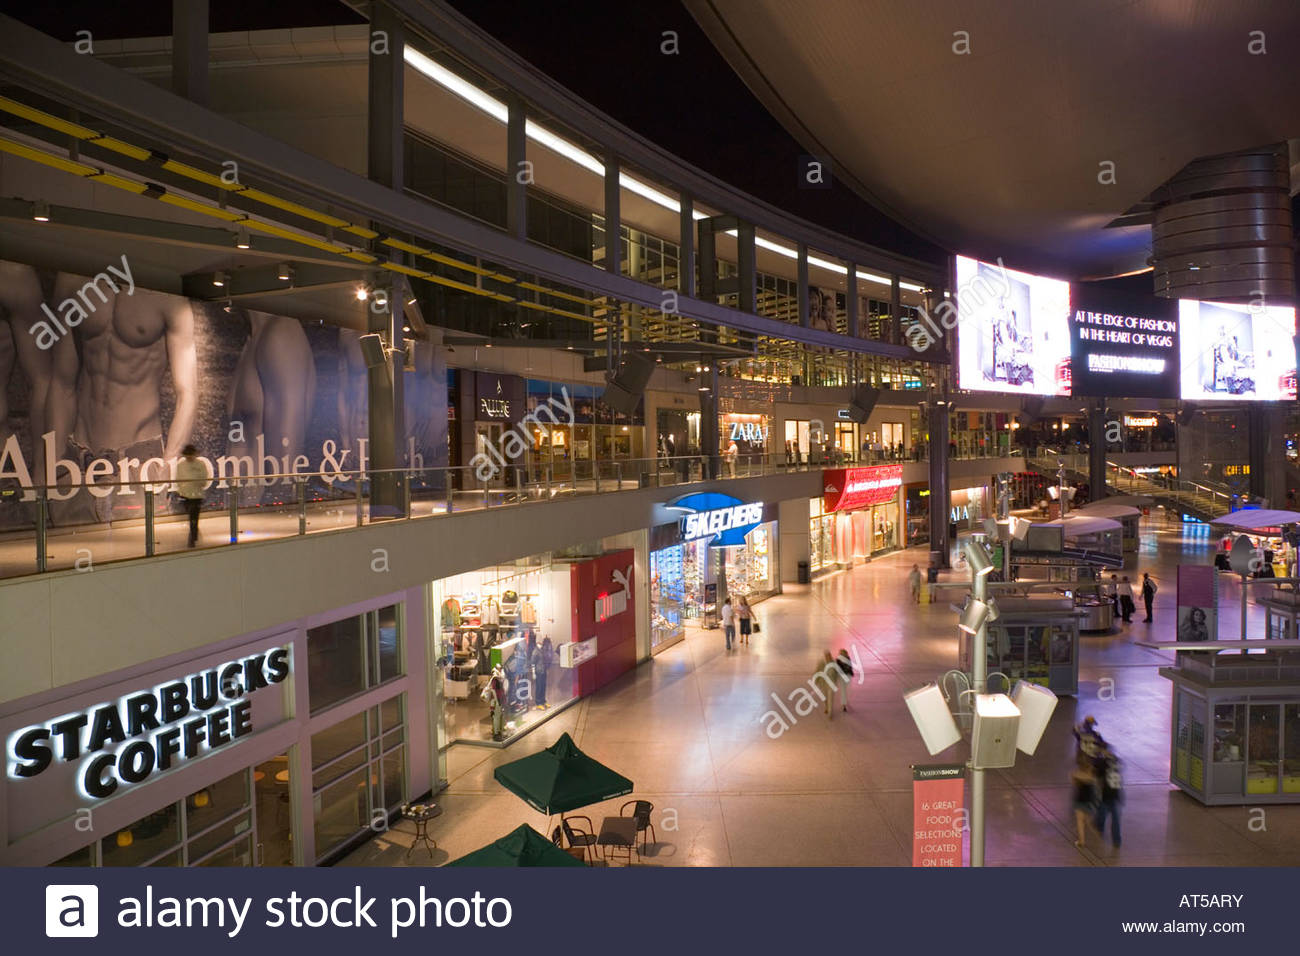 Fashion Show Mall Las Vegas Strip – A Directory of the Stores and Hours By Steve Beauregard (Updated August ) The Fashion Show Mall in Las Vegas is the longtime popular and busy indoor/outdoor shopping complex located right on the Las Vegas Strip.